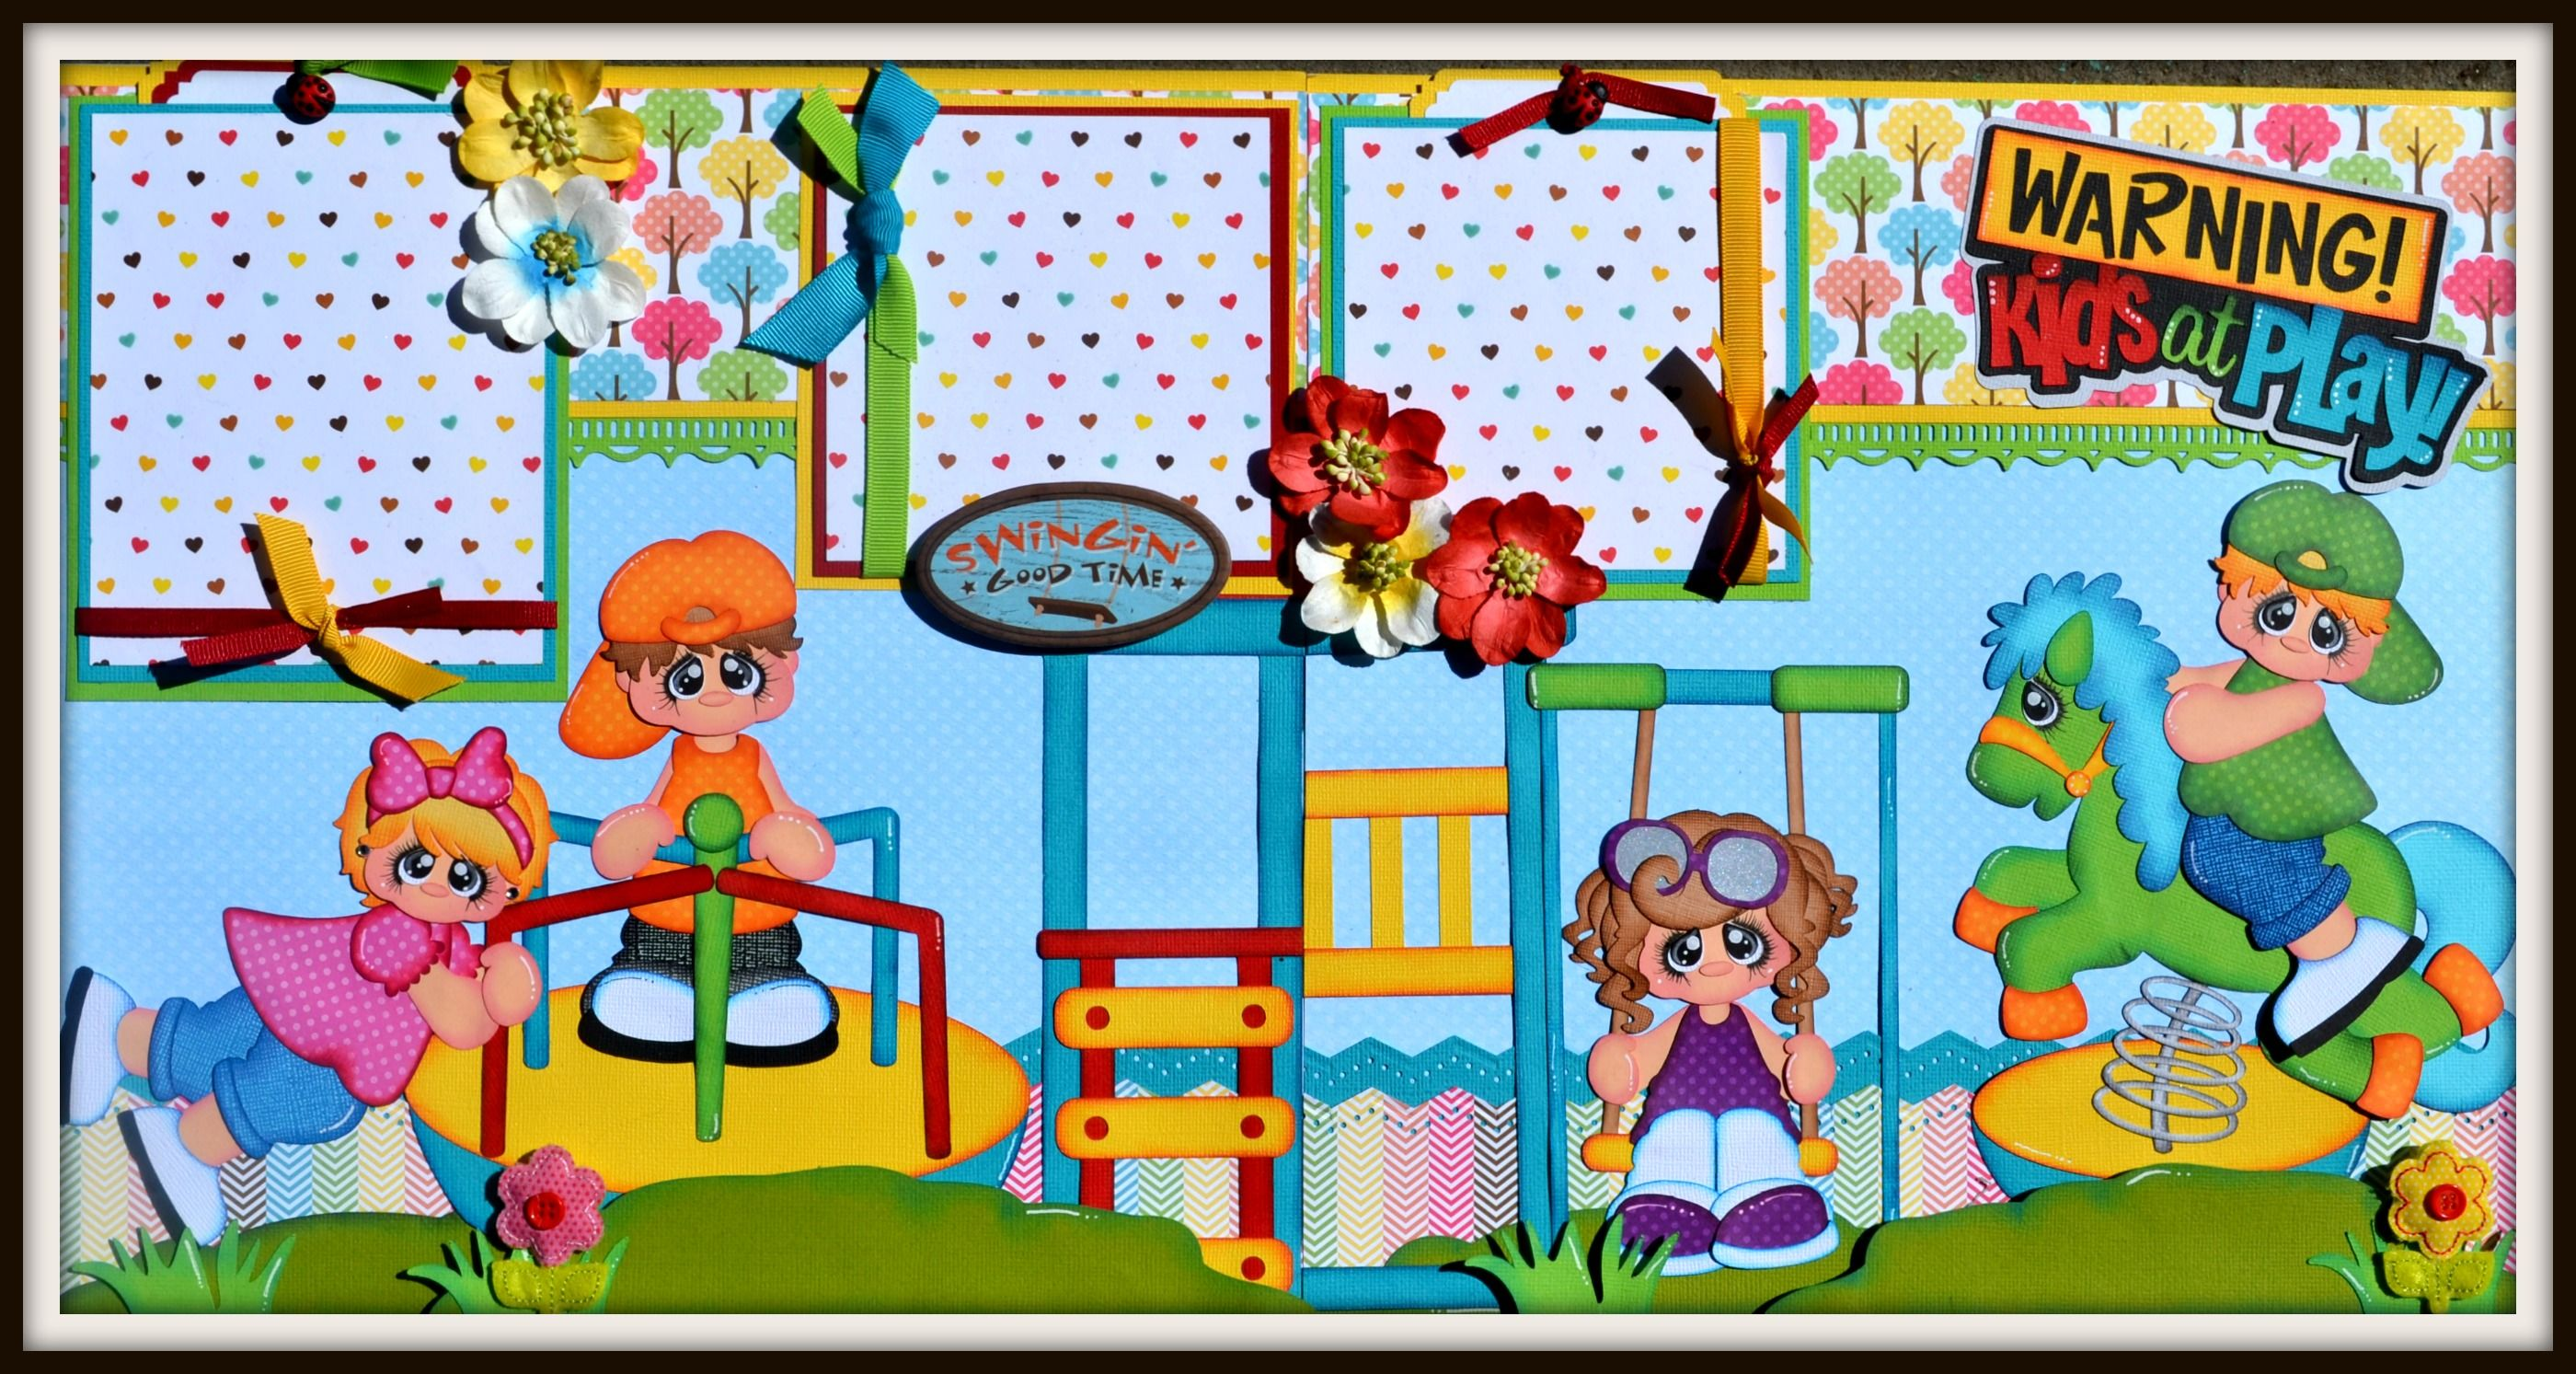 My Newest Layout using Spring Rider, Merry Go Round and Swingset-DT jess http://www.ebay.com/itm/-/321751674333